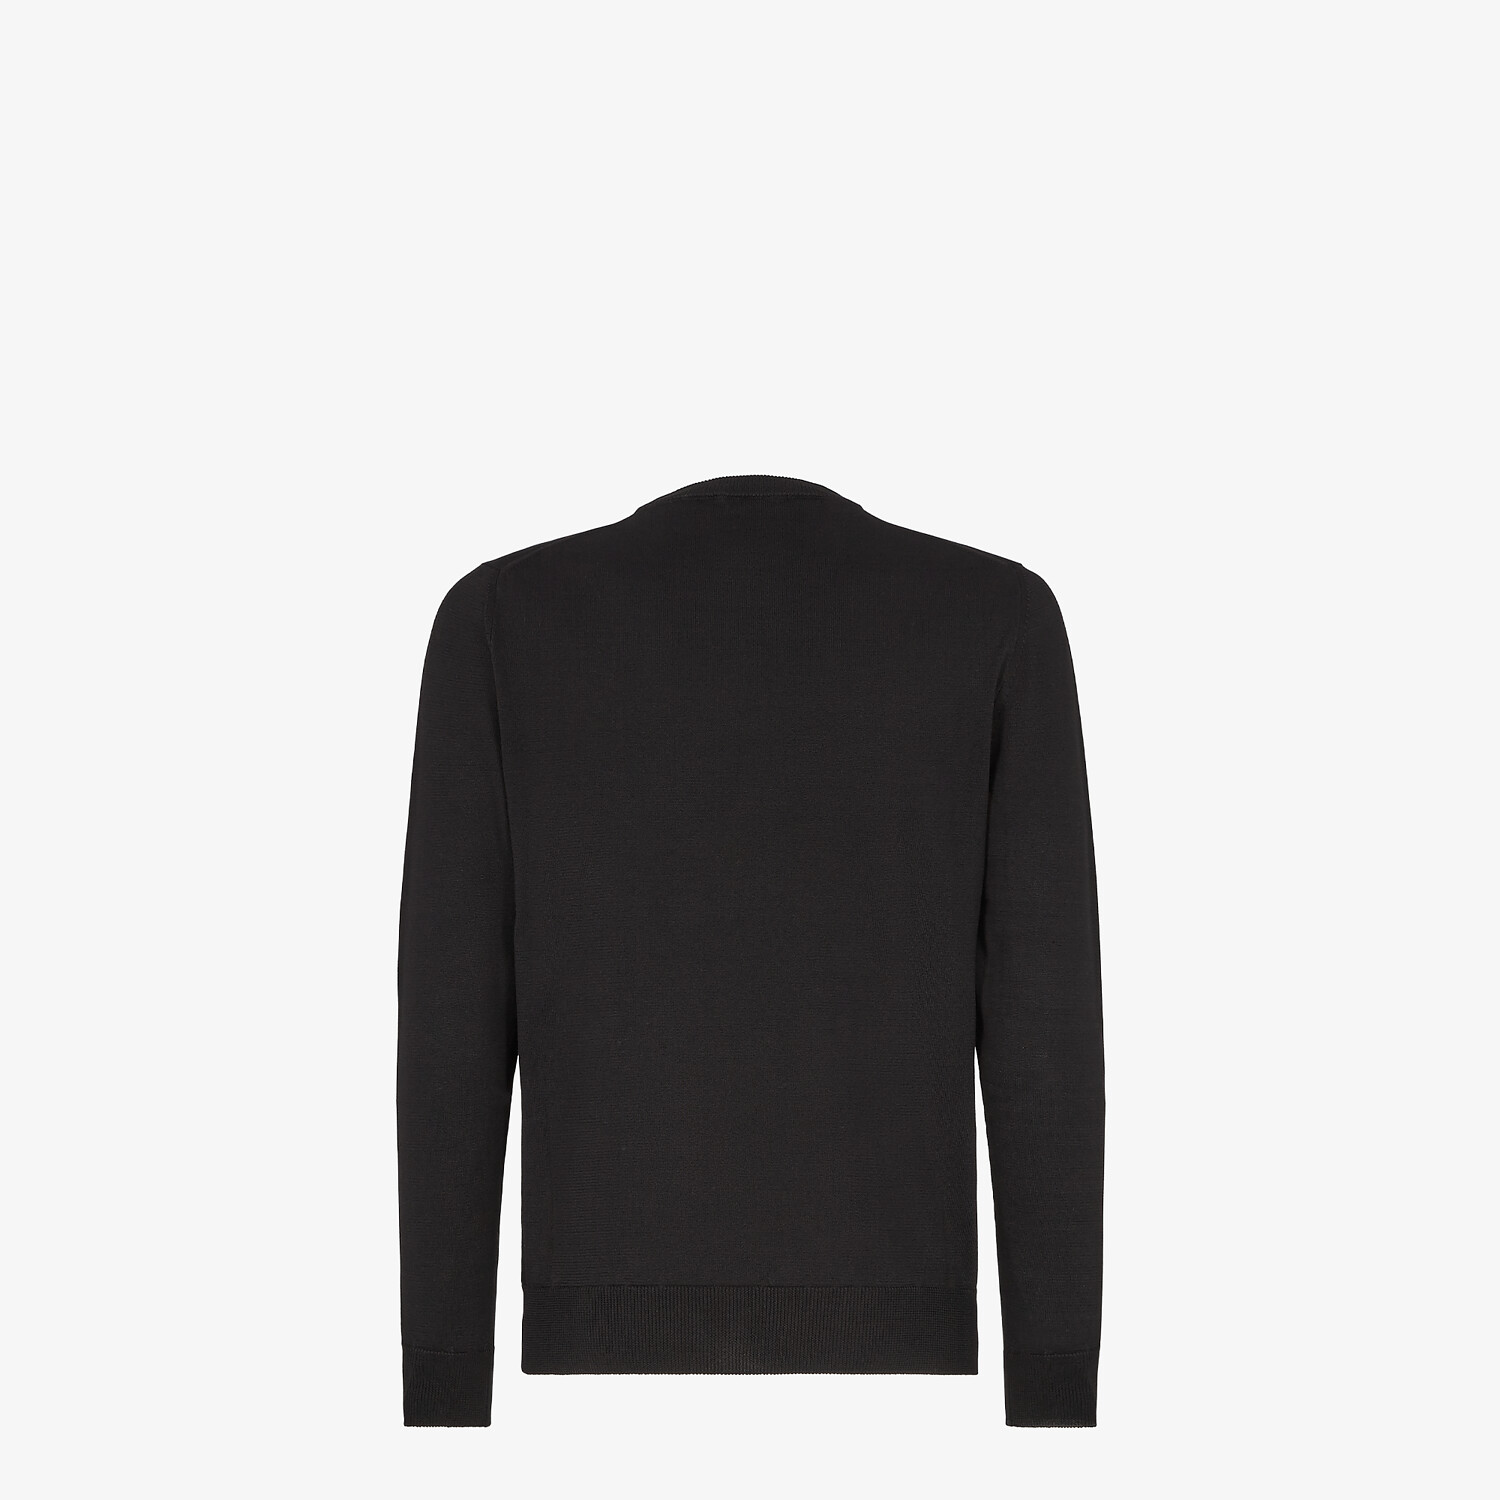 FENDI SWEATER - Black cotton sweater - view 2 detail